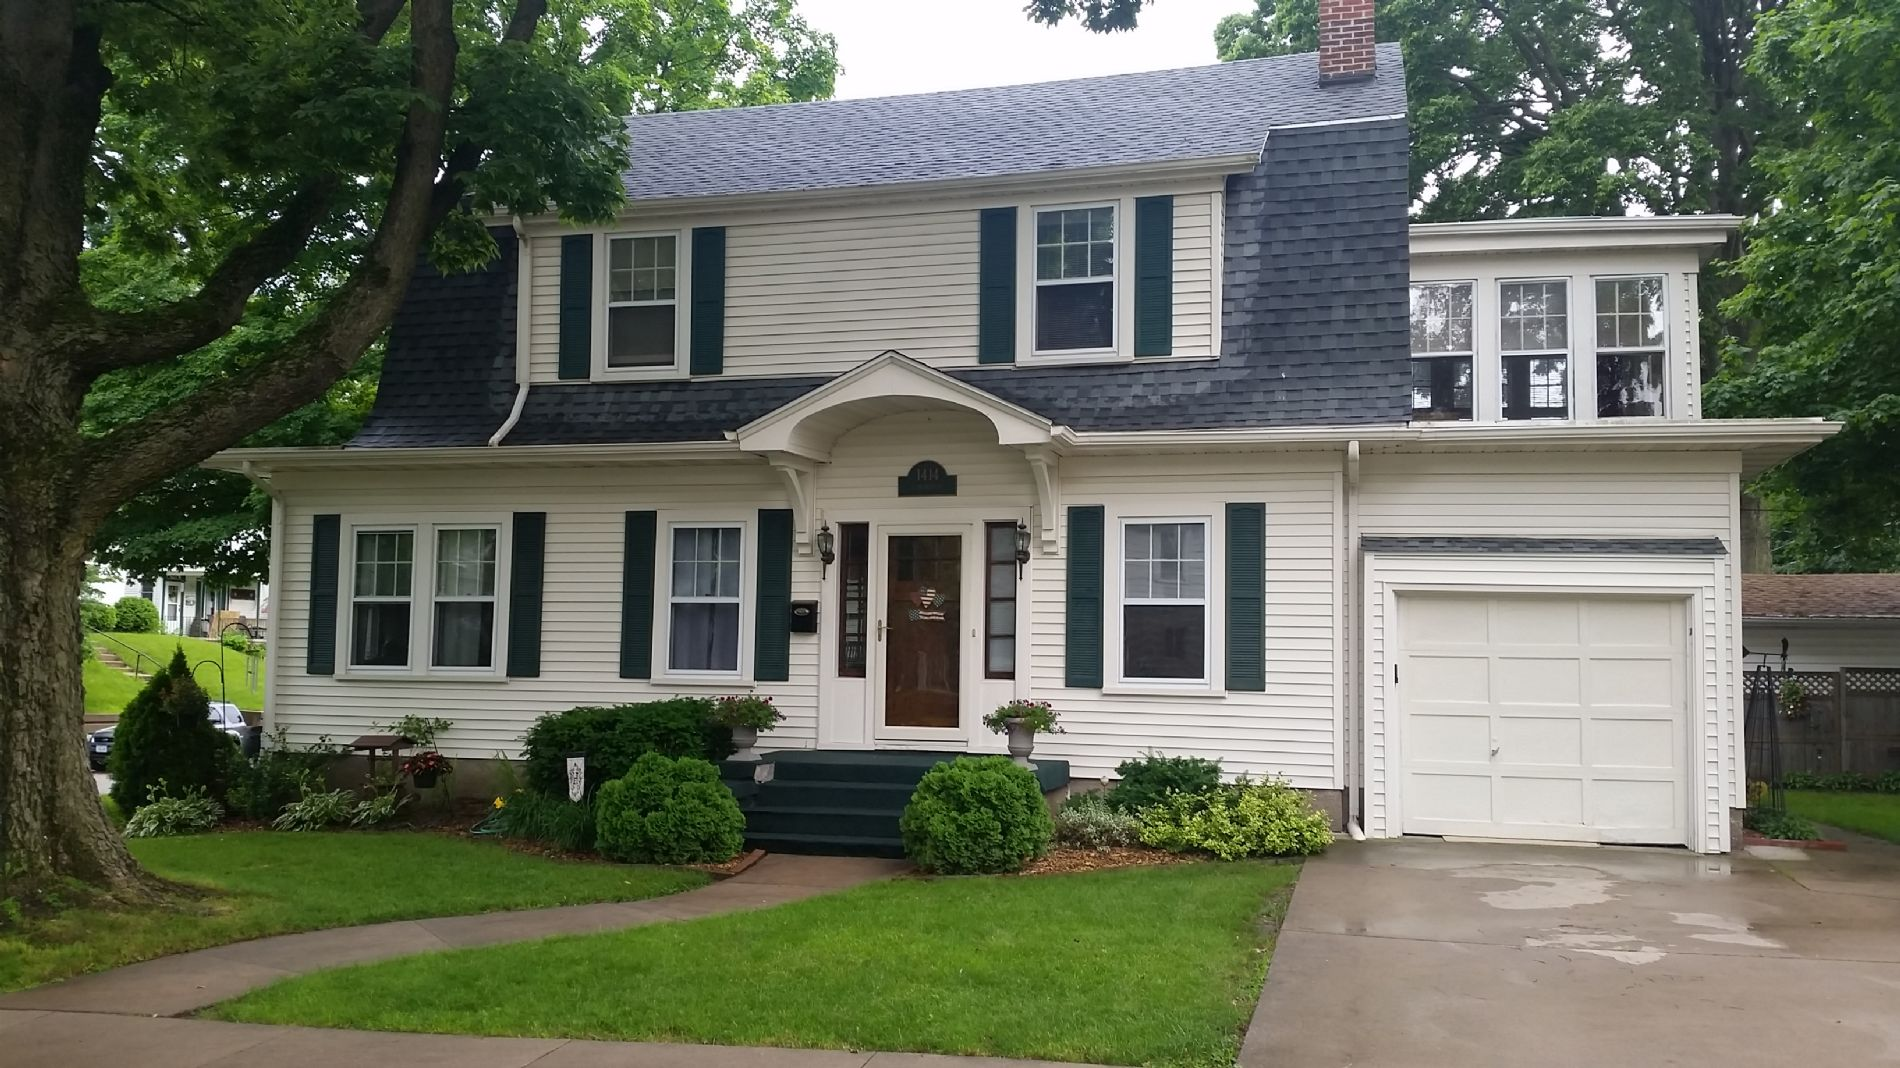 Charming dutch colonial home 1414 langworthy street for Dutch colonial house for sale